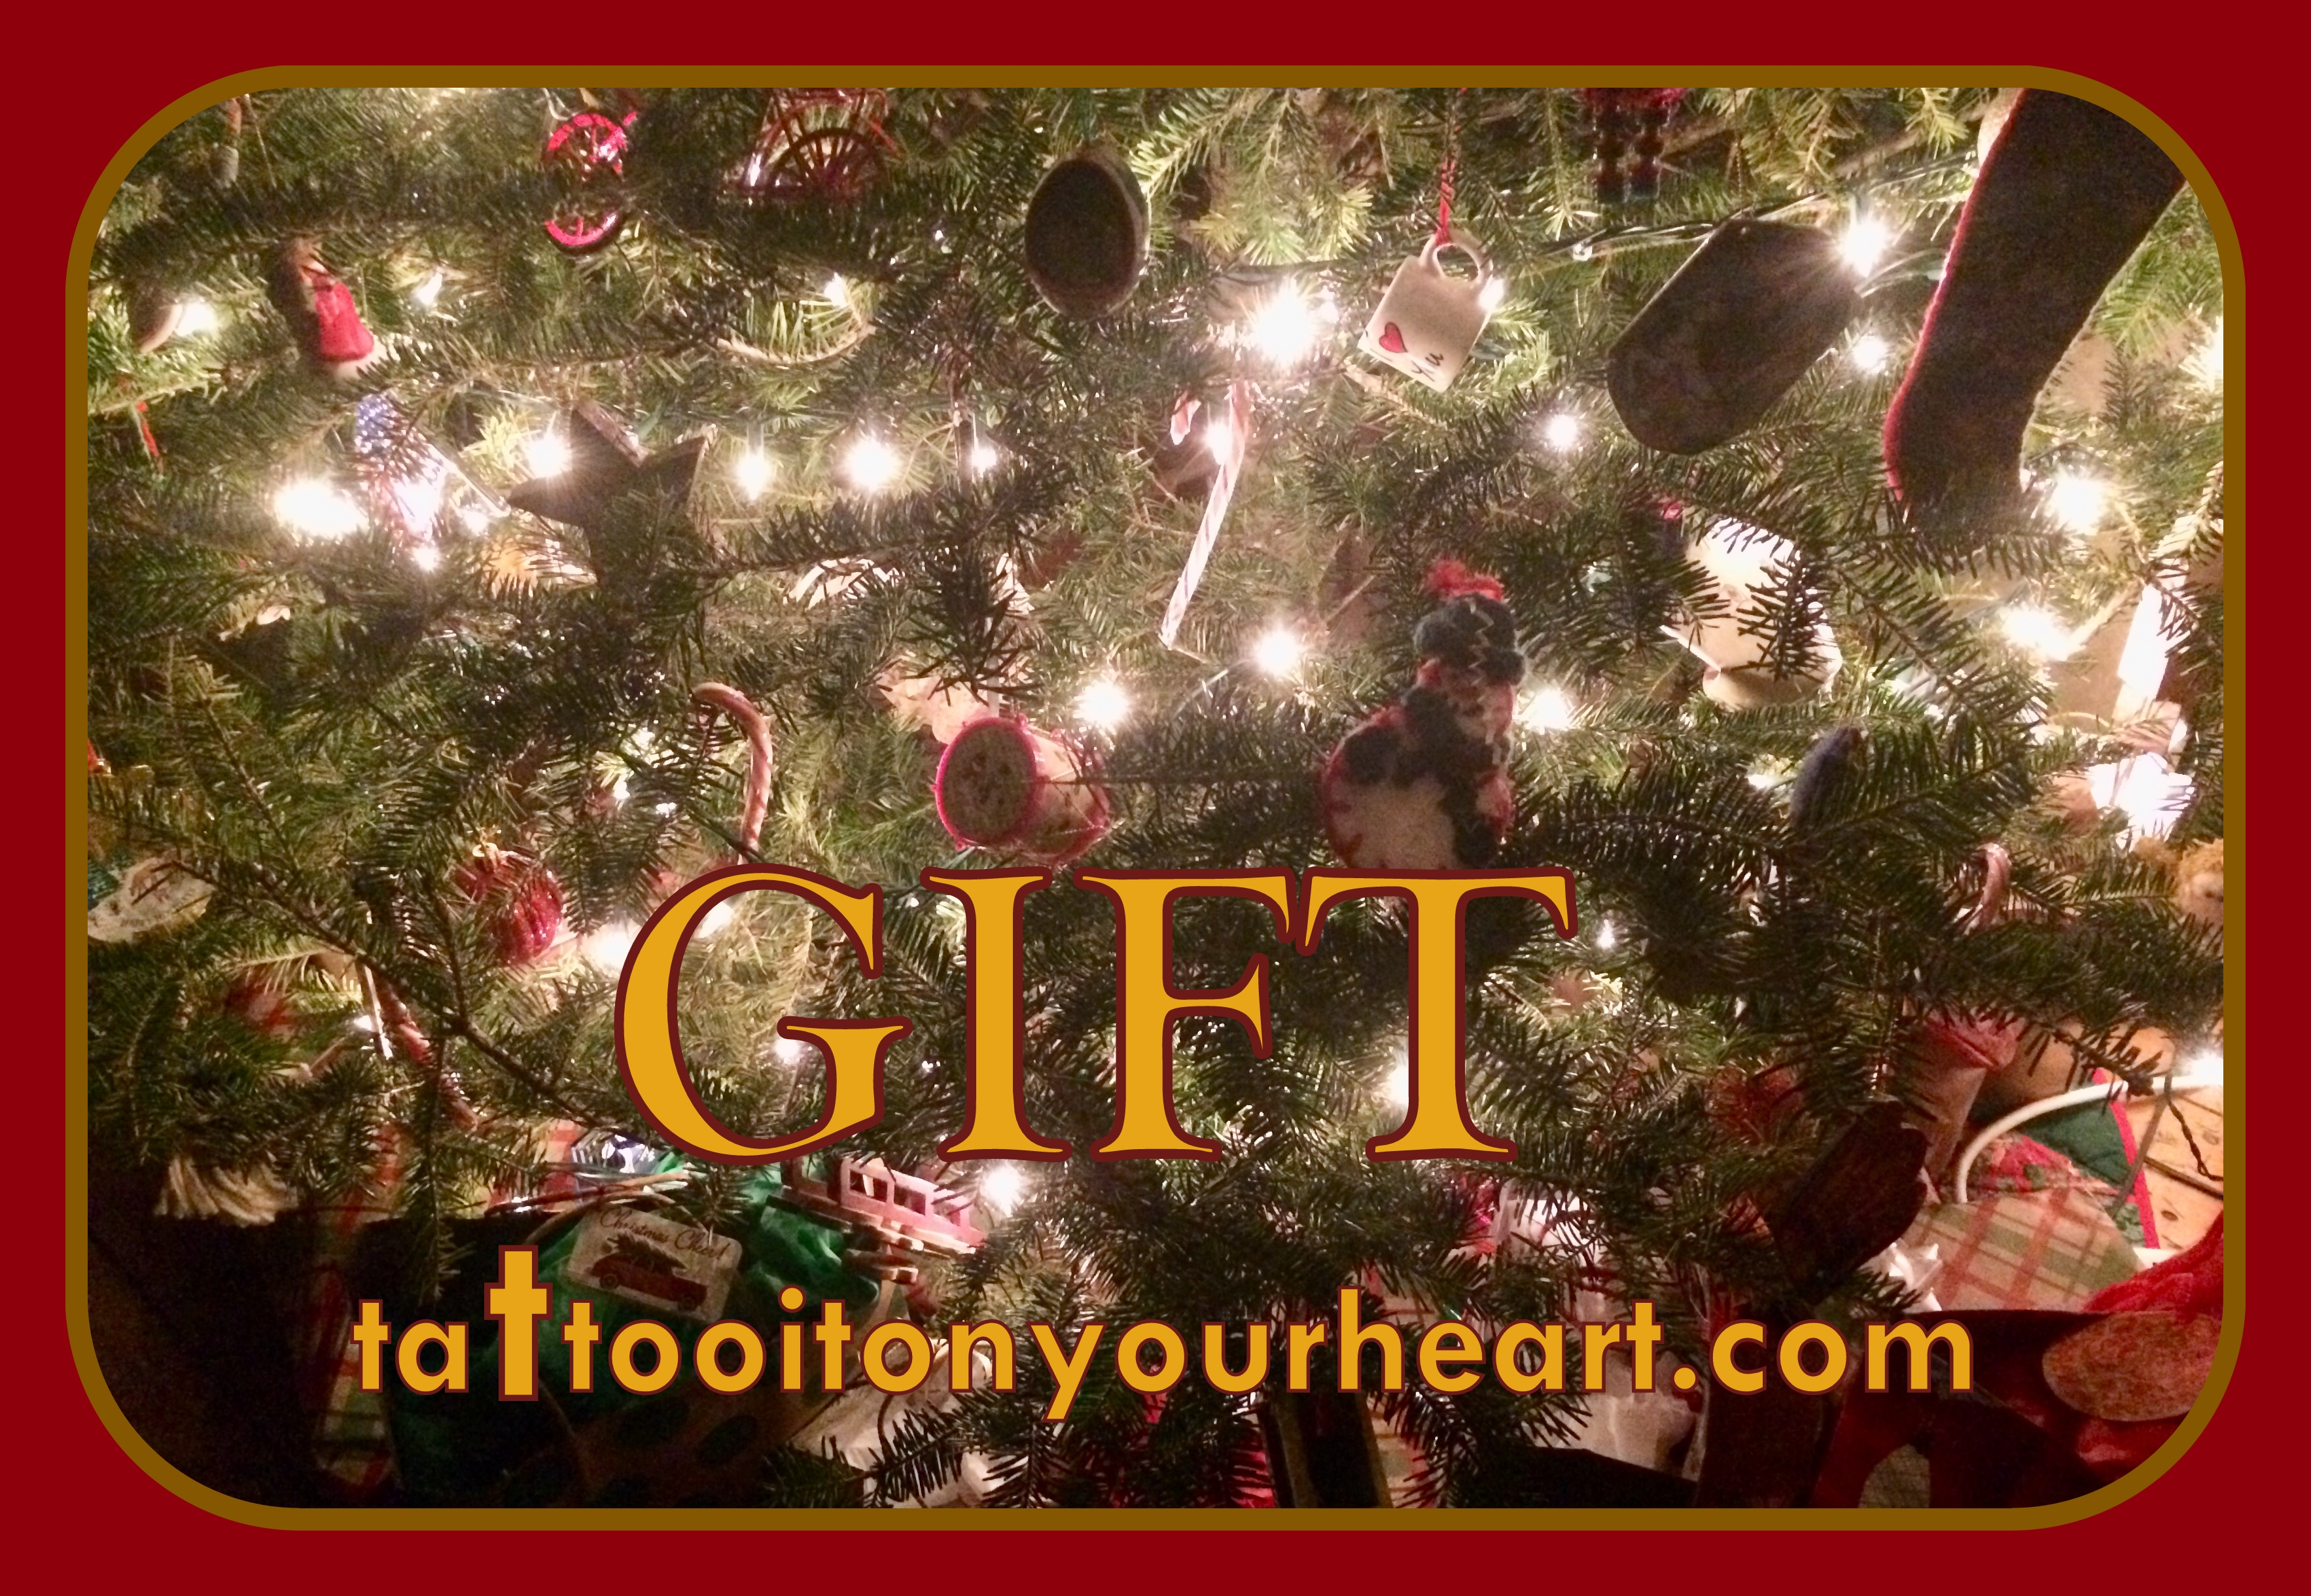 Rachael_M_Colby_Tattoo_It_OnYour_Heart_Gift